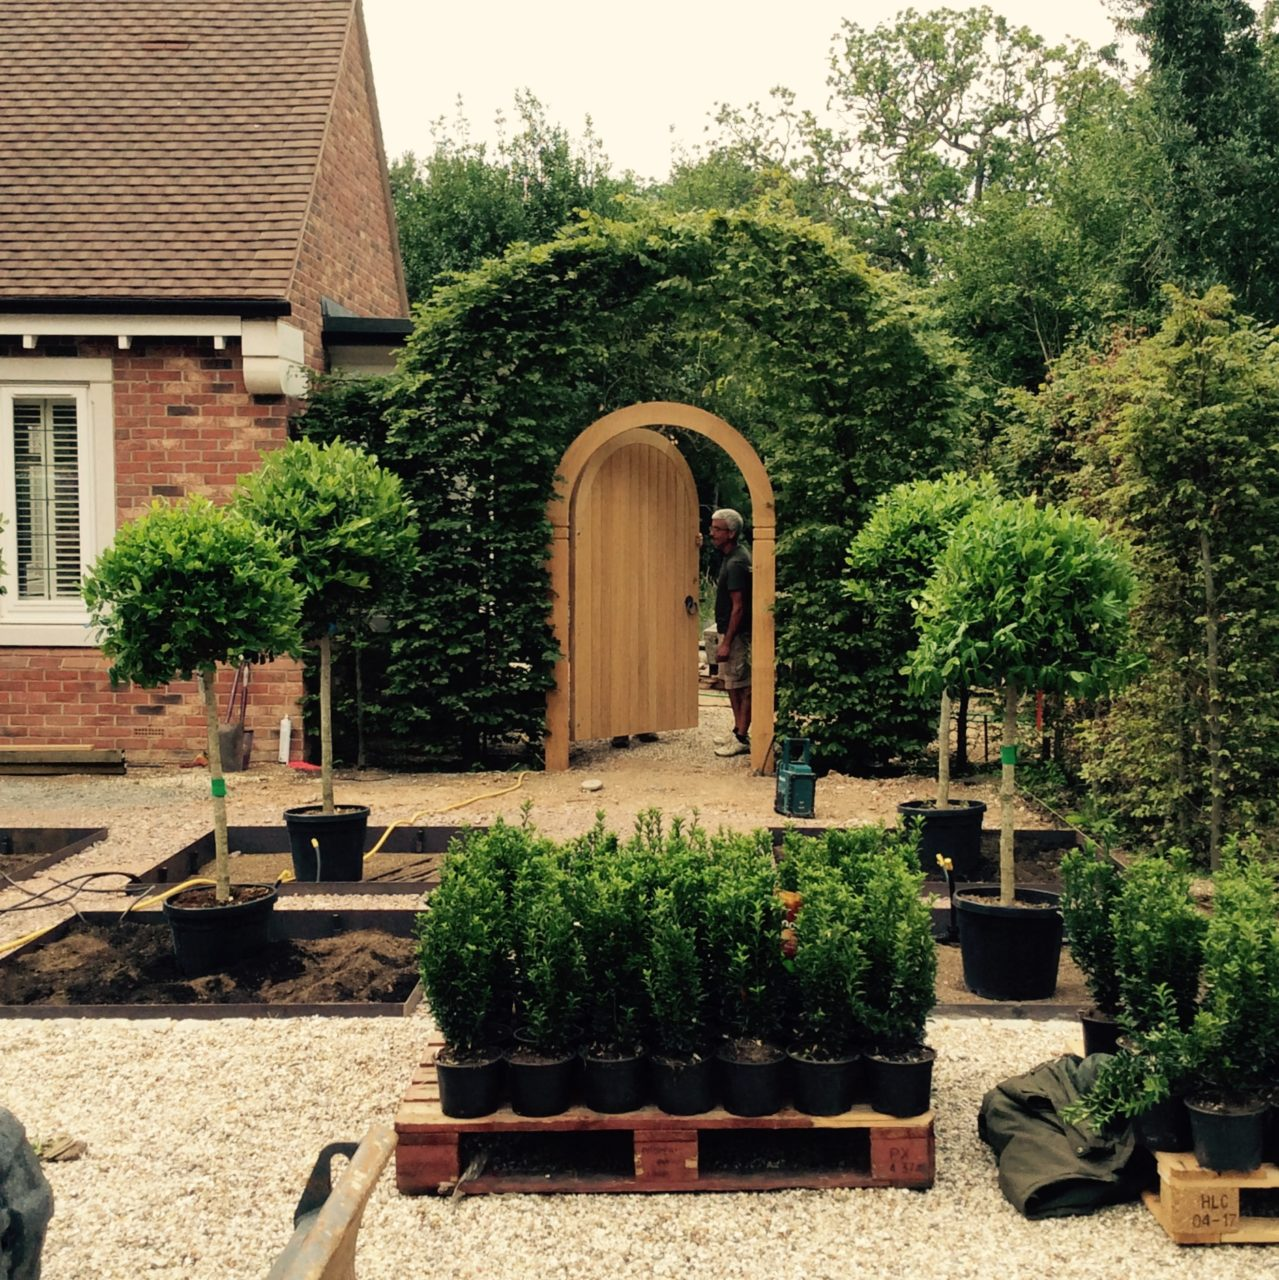 This is a formal front garden for my clients near Finchampstead